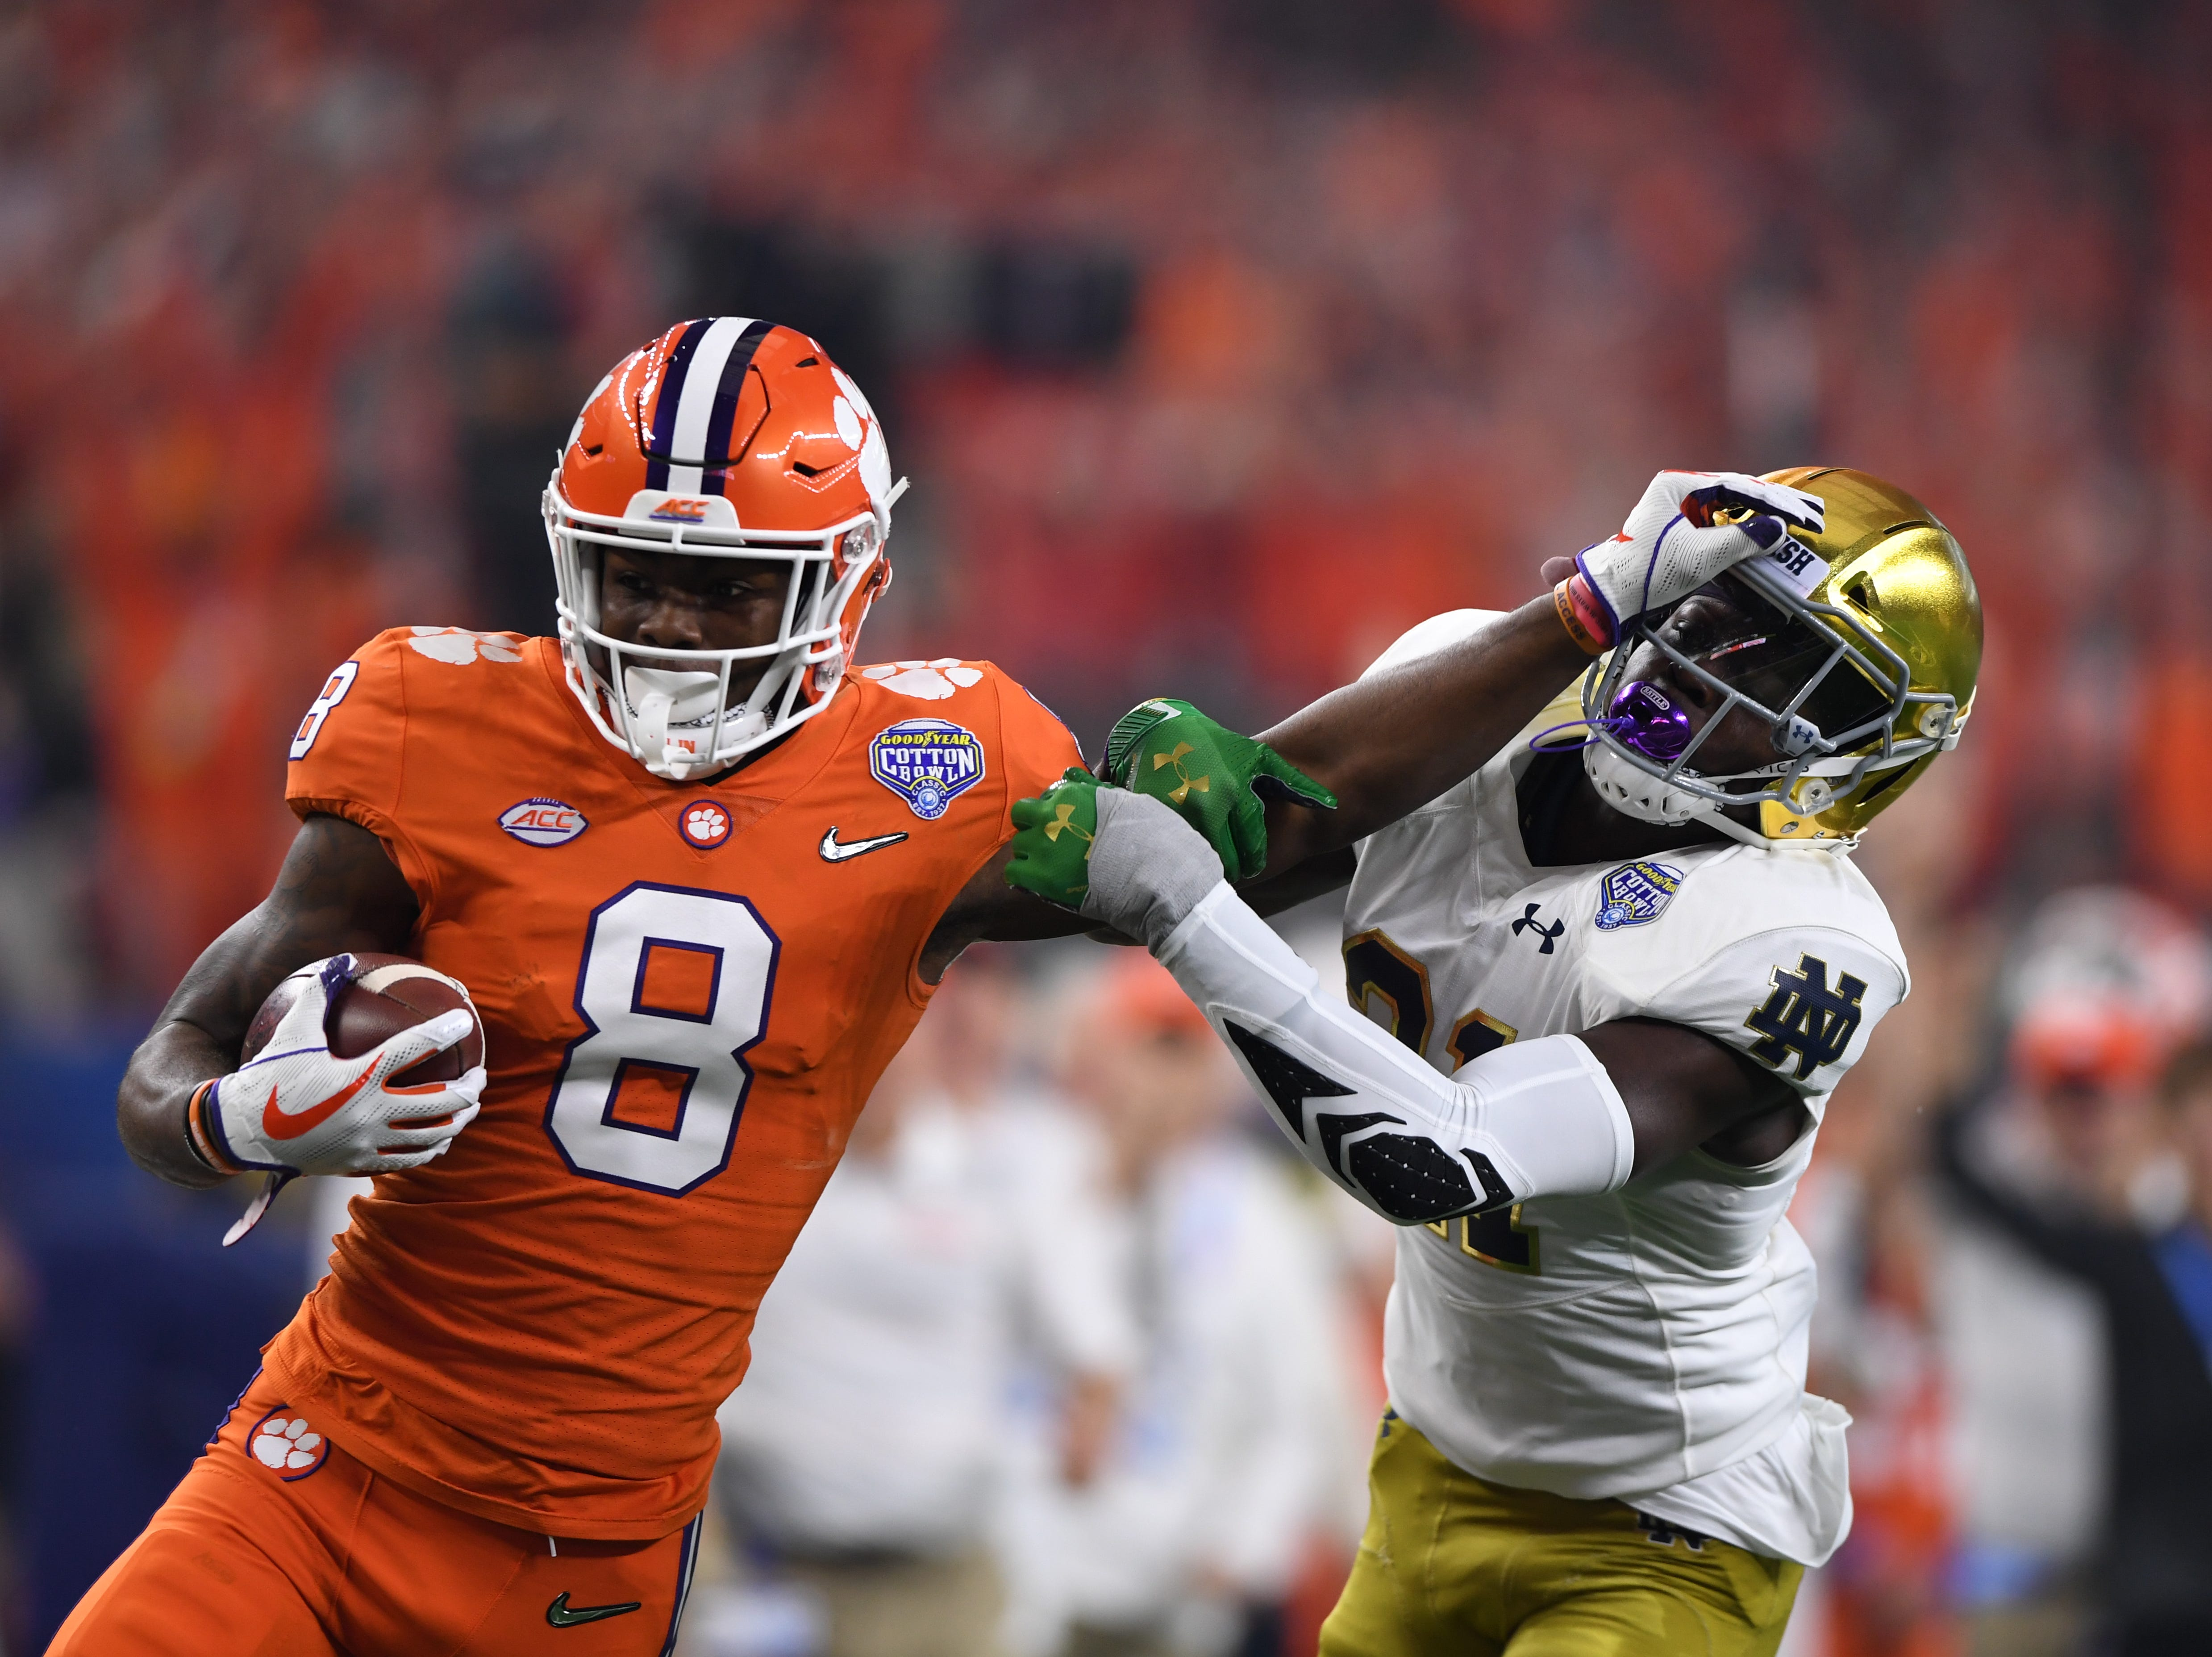 Clemson's Justyn Ross stiff arms a Notre Dame defender on his way to a 52-yard touchdown in the second quarter of the Cotton Bowl on December 29, 2018.